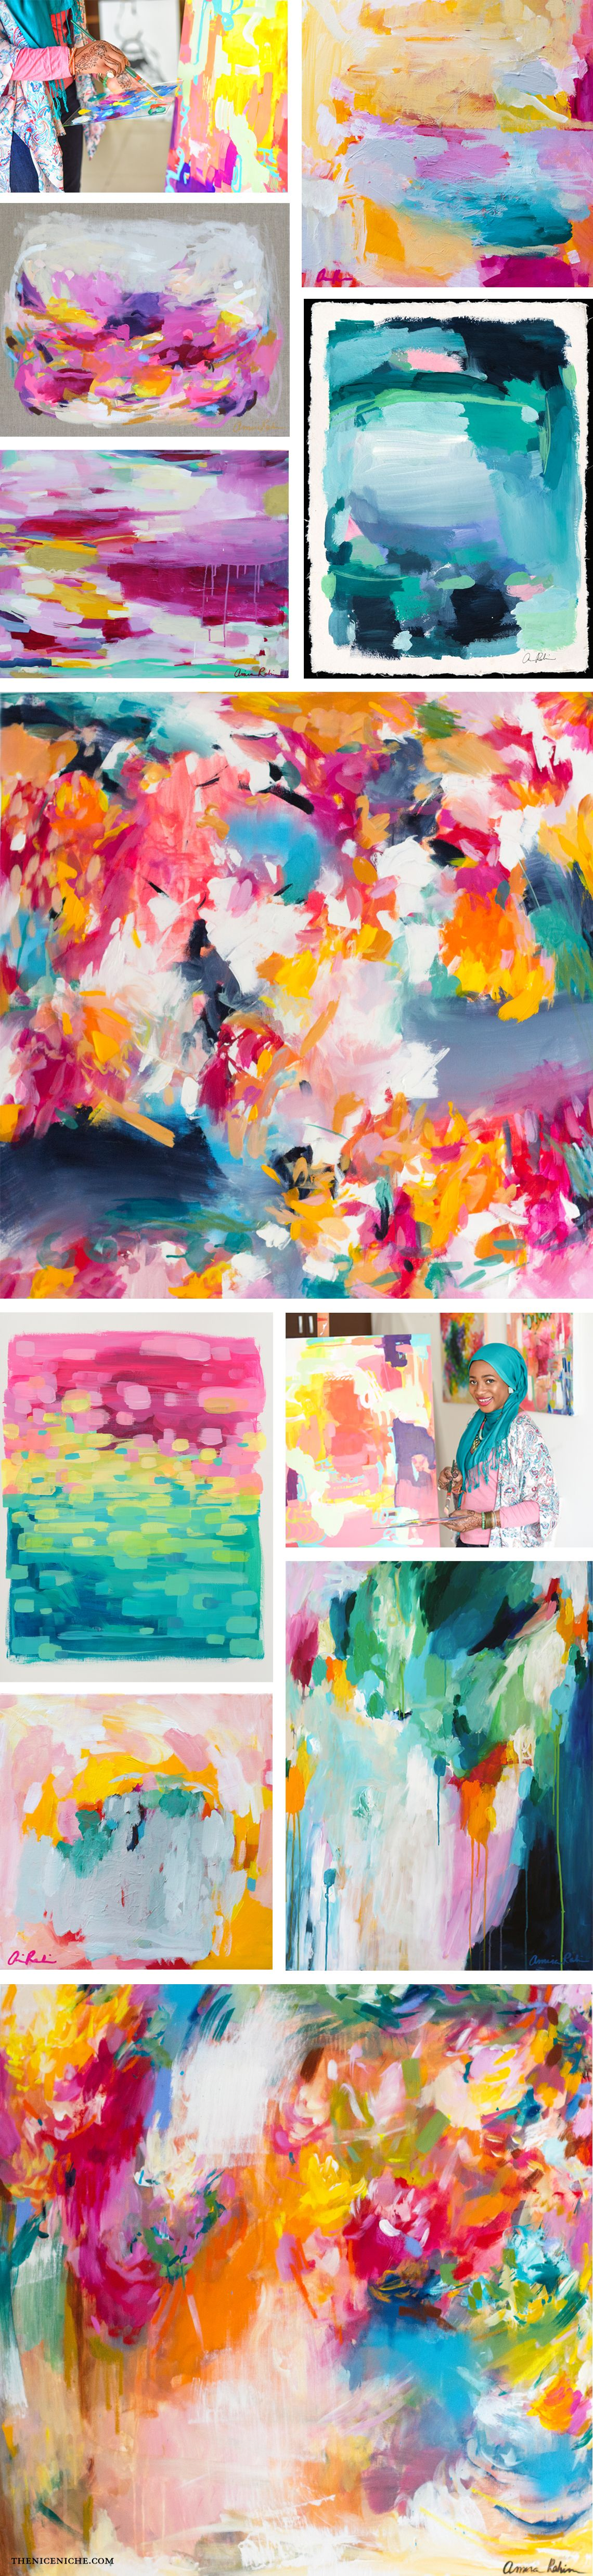 Amira Rahim Colorful Abstract Paintings. Her Work Is A True Inspiration!